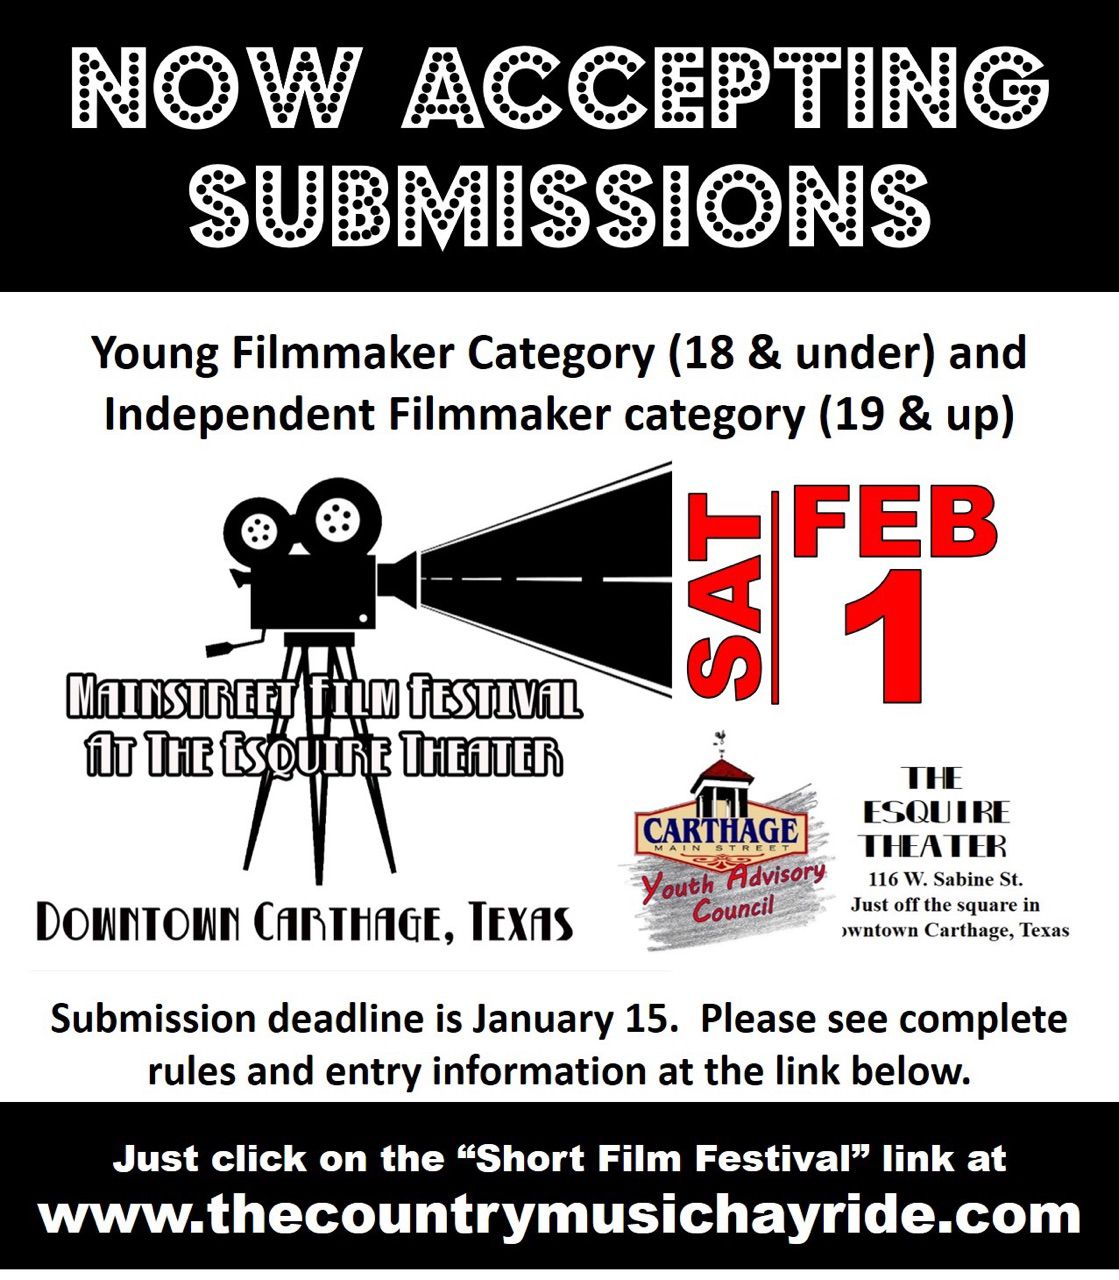 Mainstreet Film Festival accepting submissions through Jan. 15